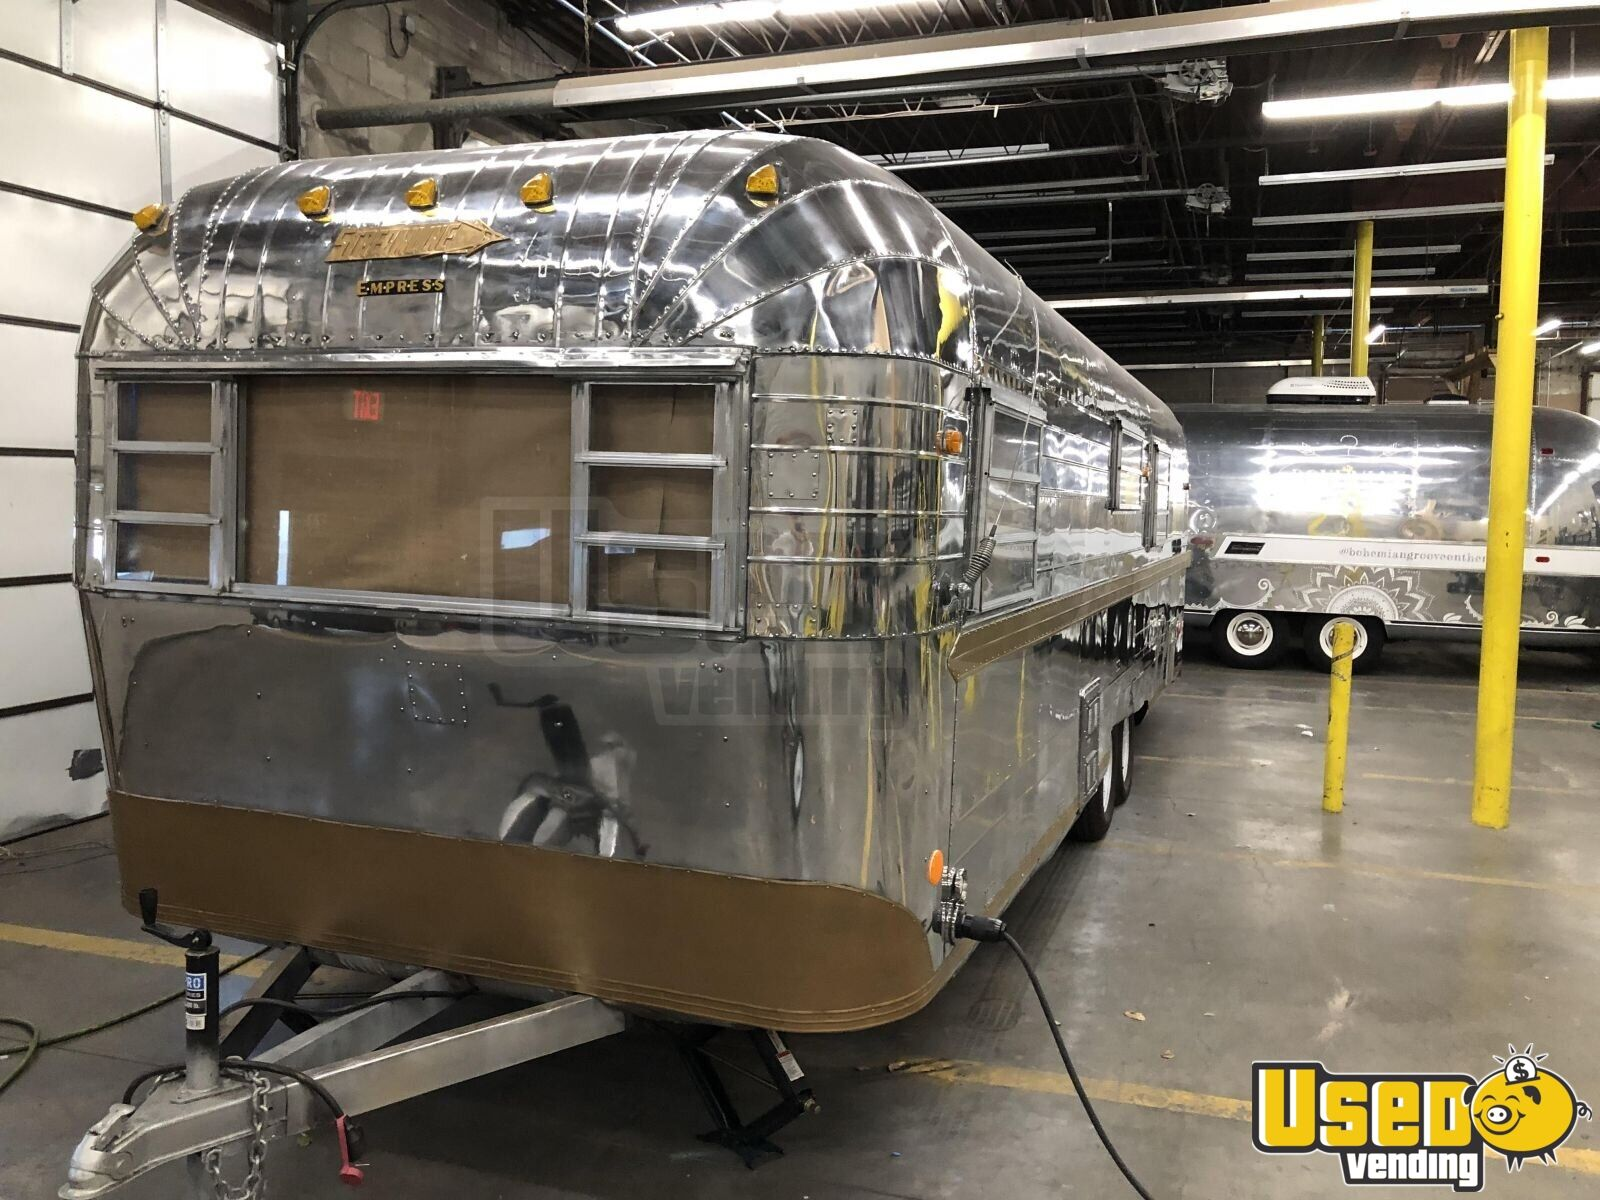 1968 Streamline Empress Mobile Boutique Trailer Shore Power Cord Texas for Sale - 6